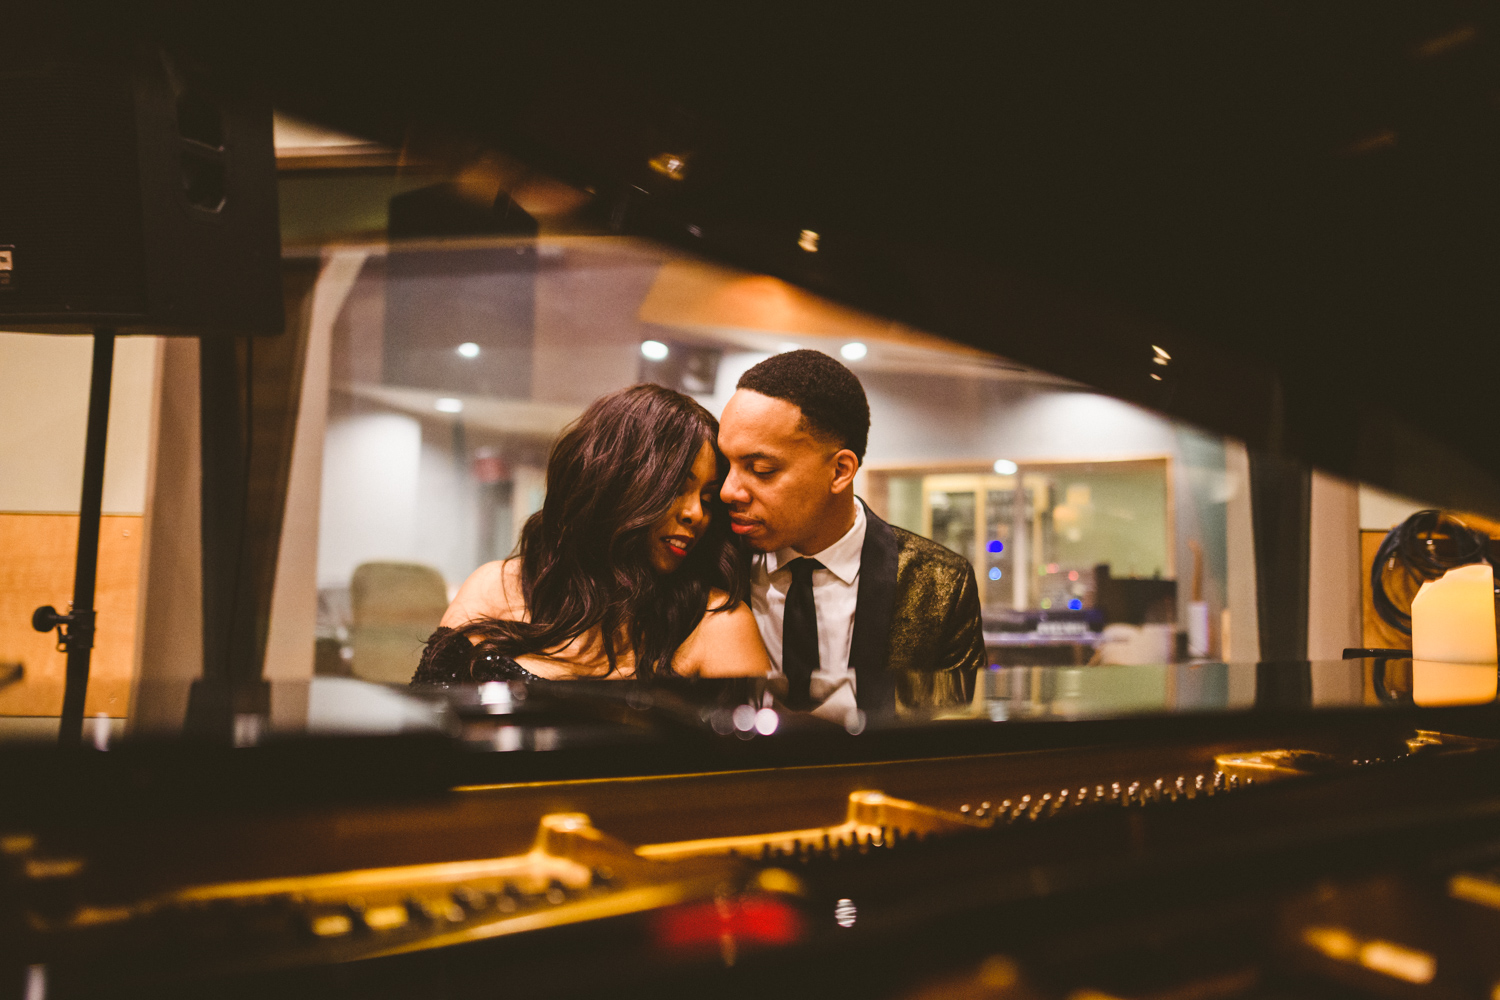 054 - couple in love looking at each other in front of piano in recording studio.jpg